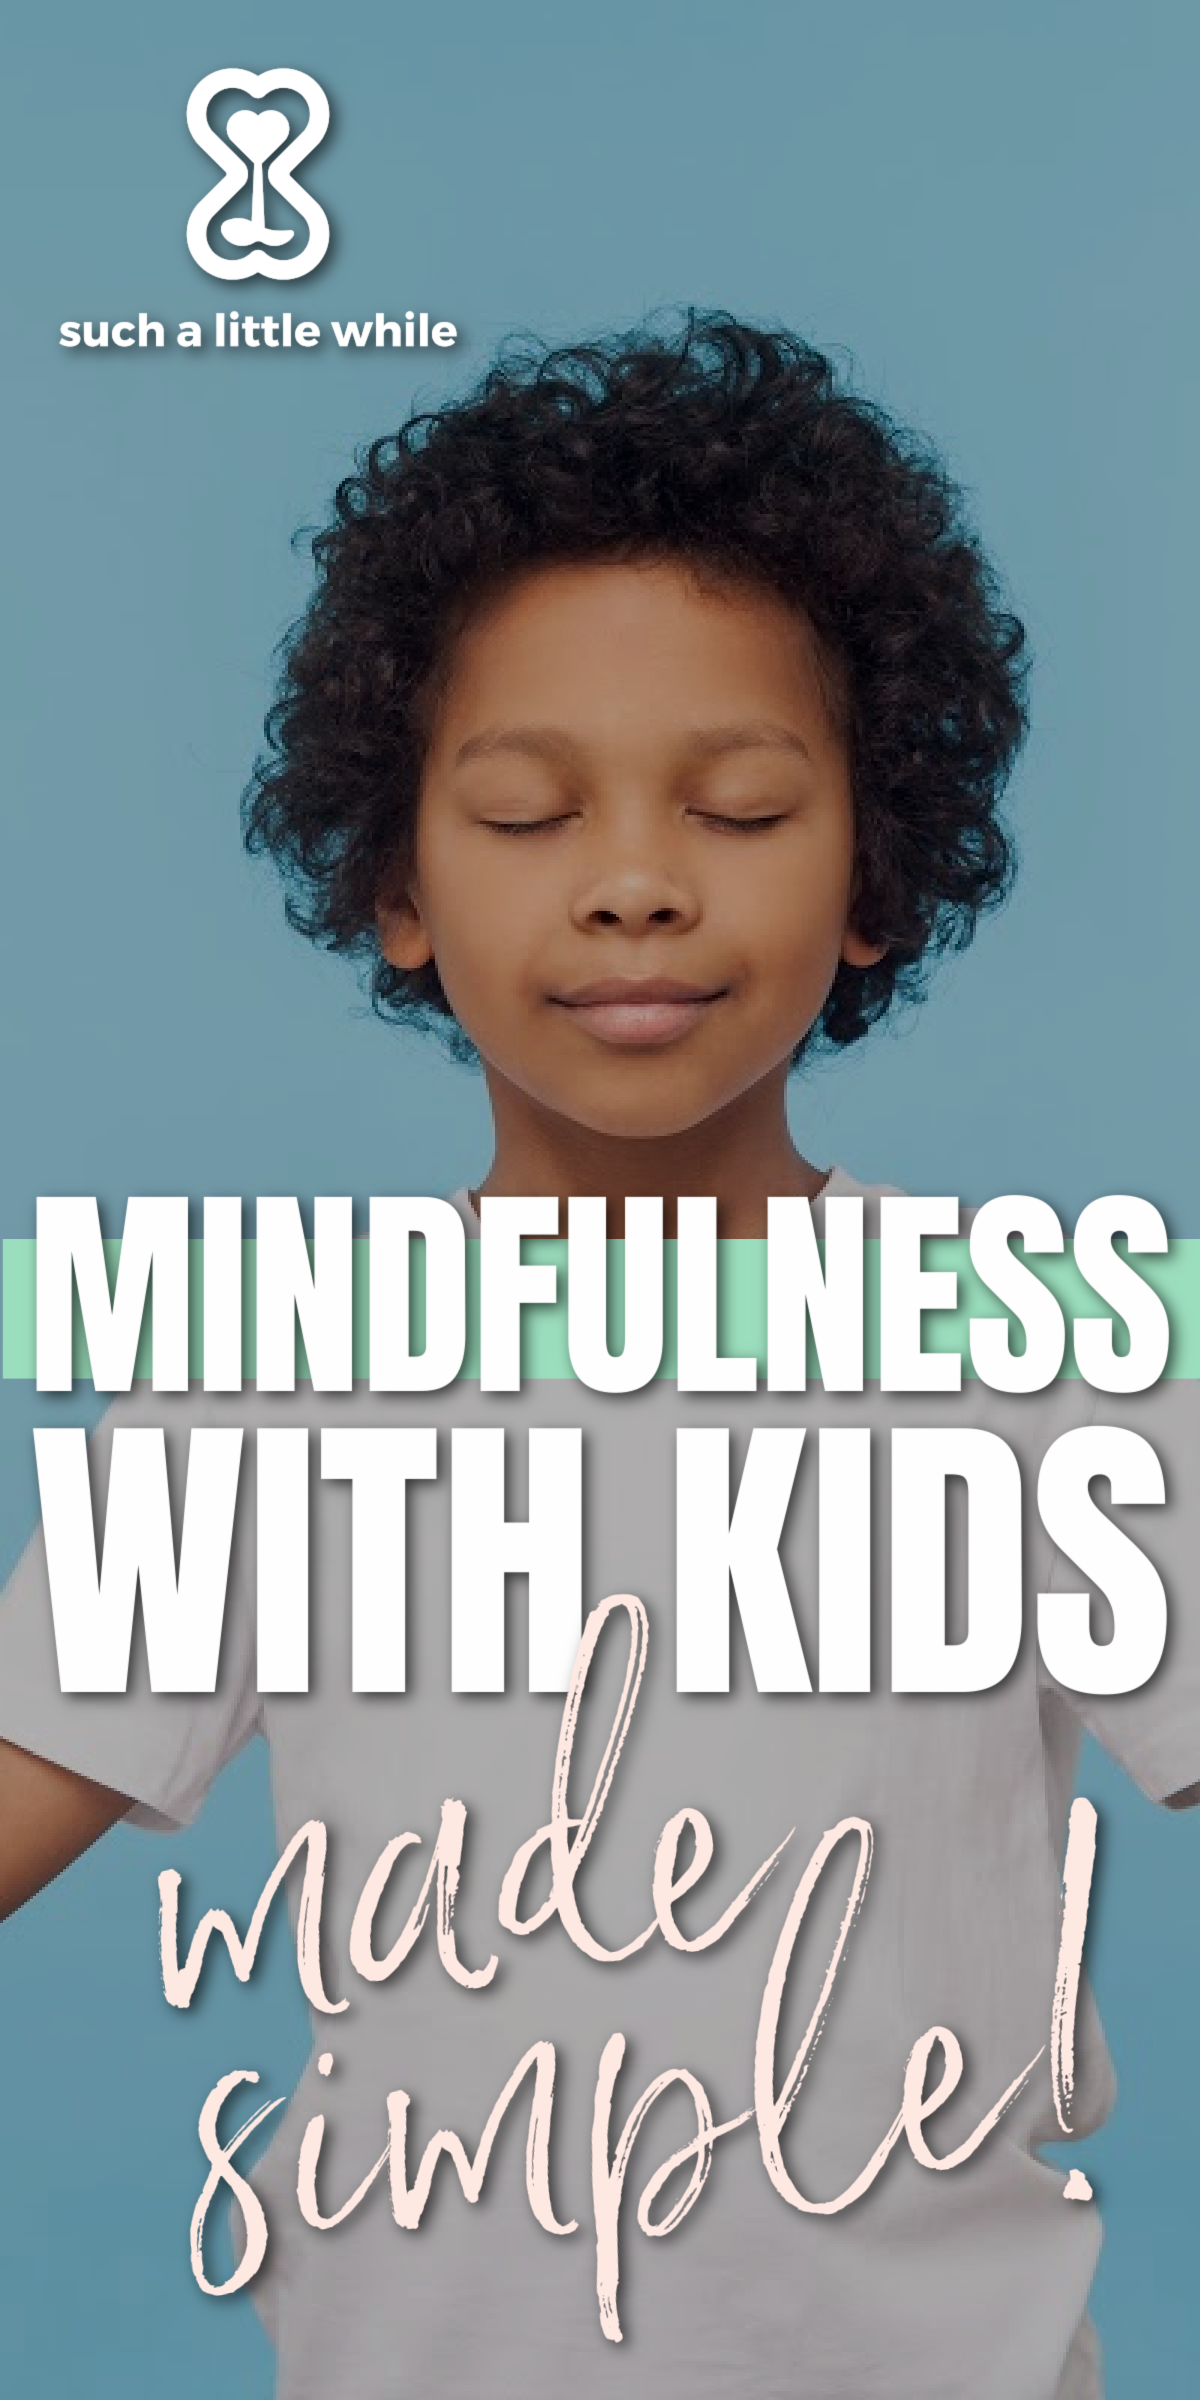 Mindfulness Script for Kids Made Simple by Such a Little While